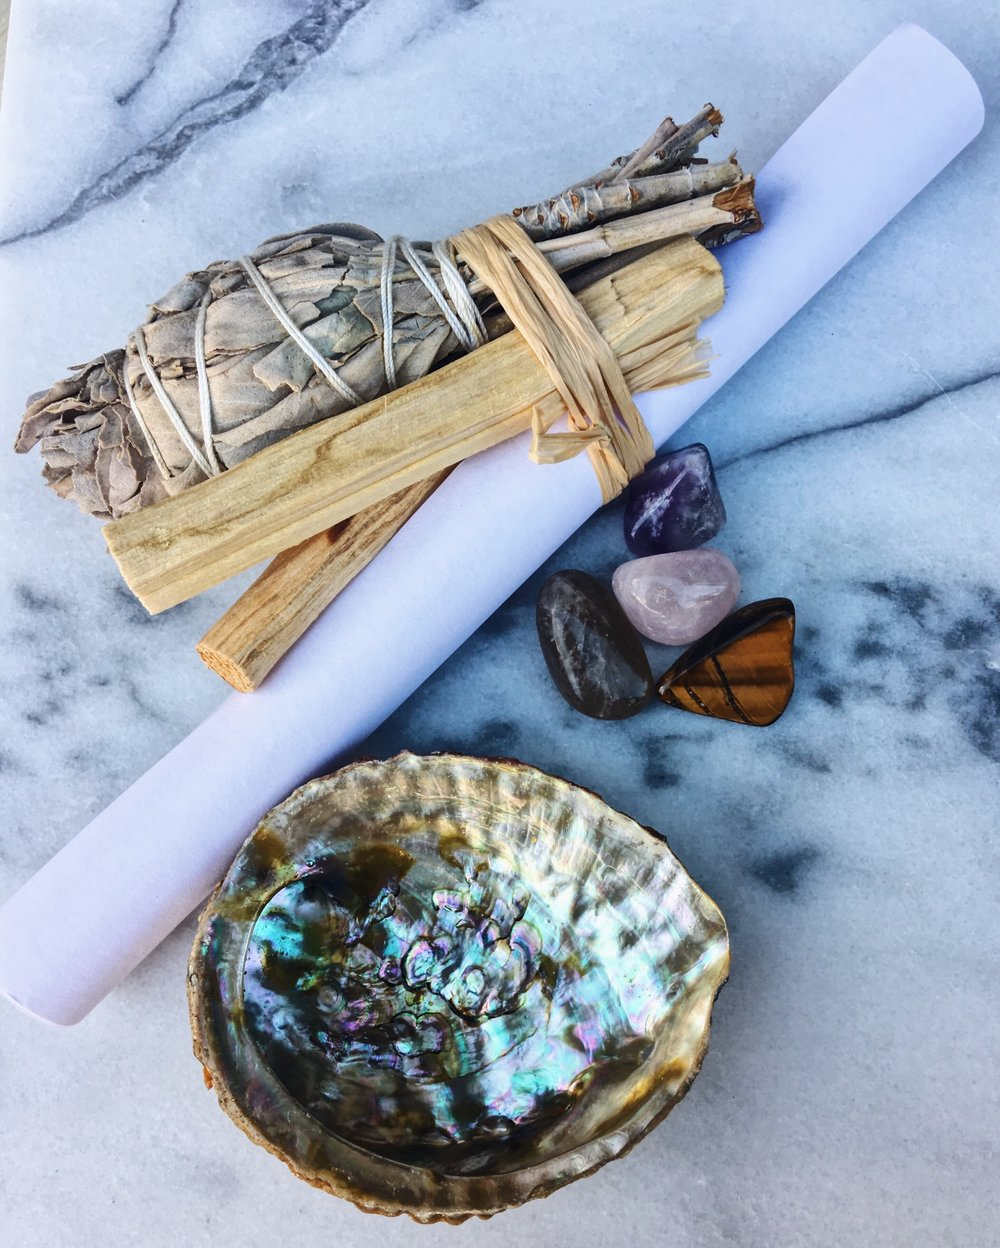 "small kit - This beautiful smaller kit contains white sage, palo santo, crystals, a 3-4"" abalone shell. All of the contents were activated and cleansed by at least 2 soundbaths using crystal bowls & smudged with sage.$25/kit"